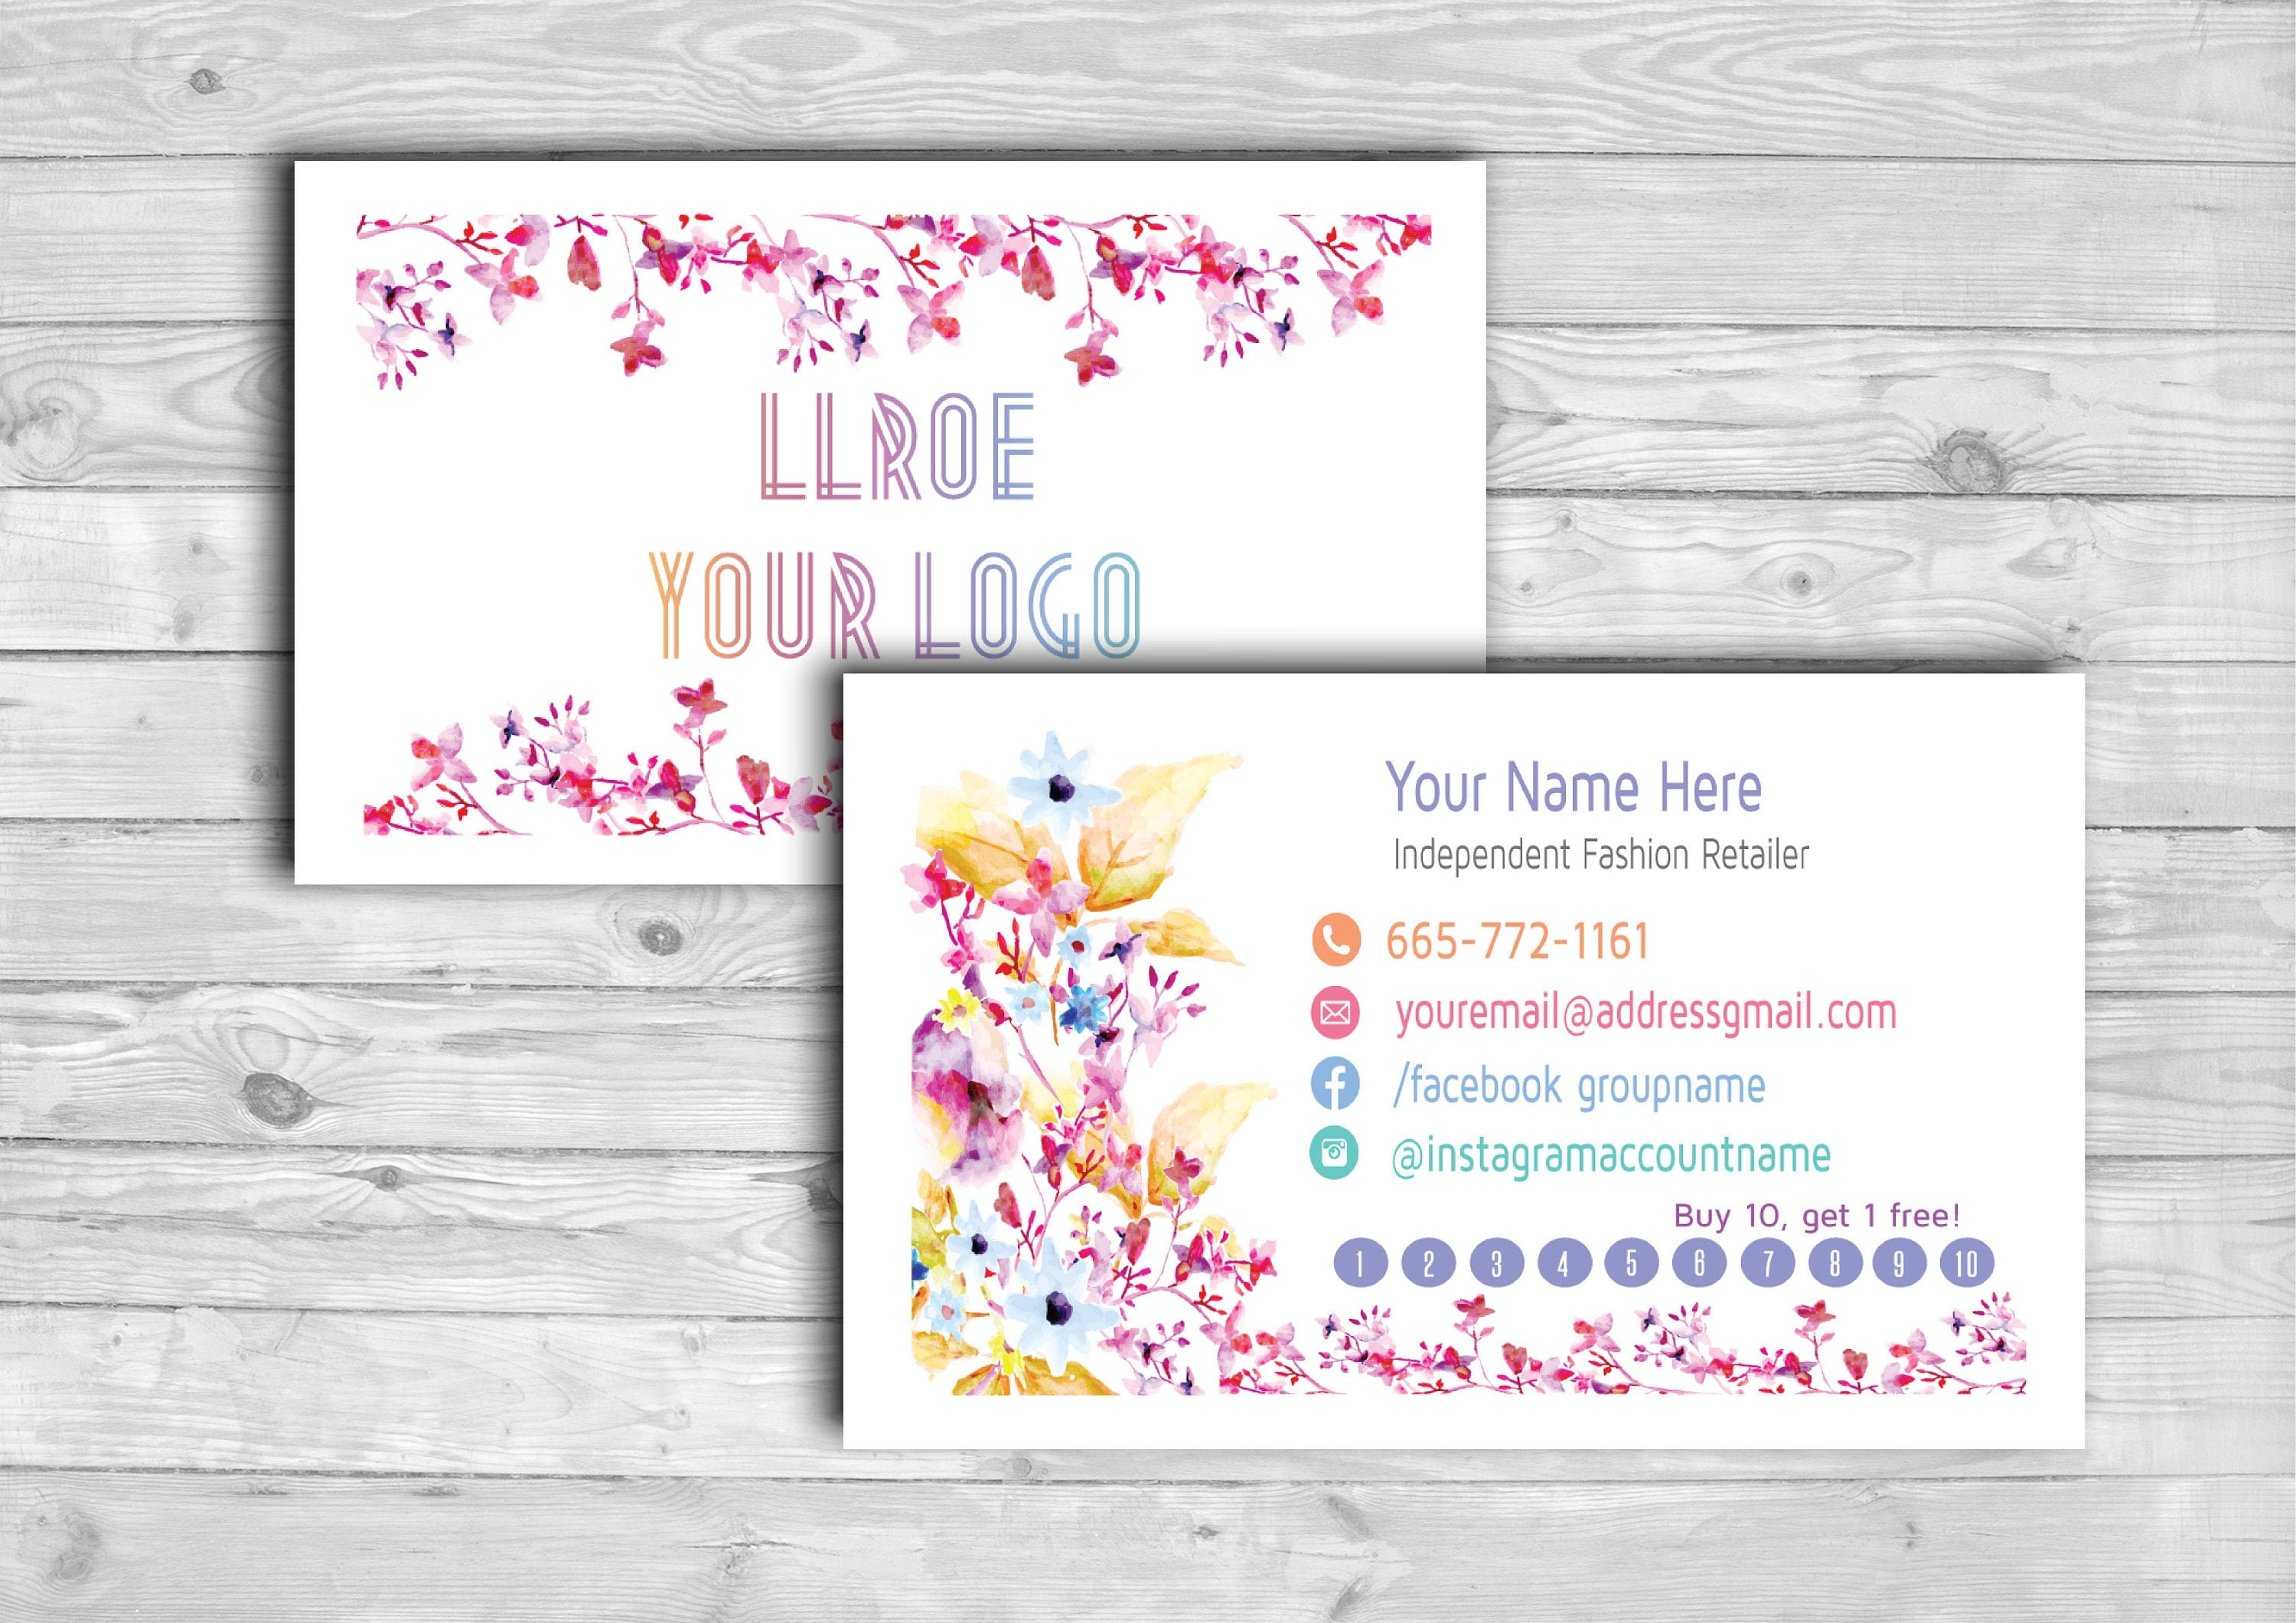 Llroe Business Punch Cards Home Office Approved Colors And Font Flora From Fastproofdigital On